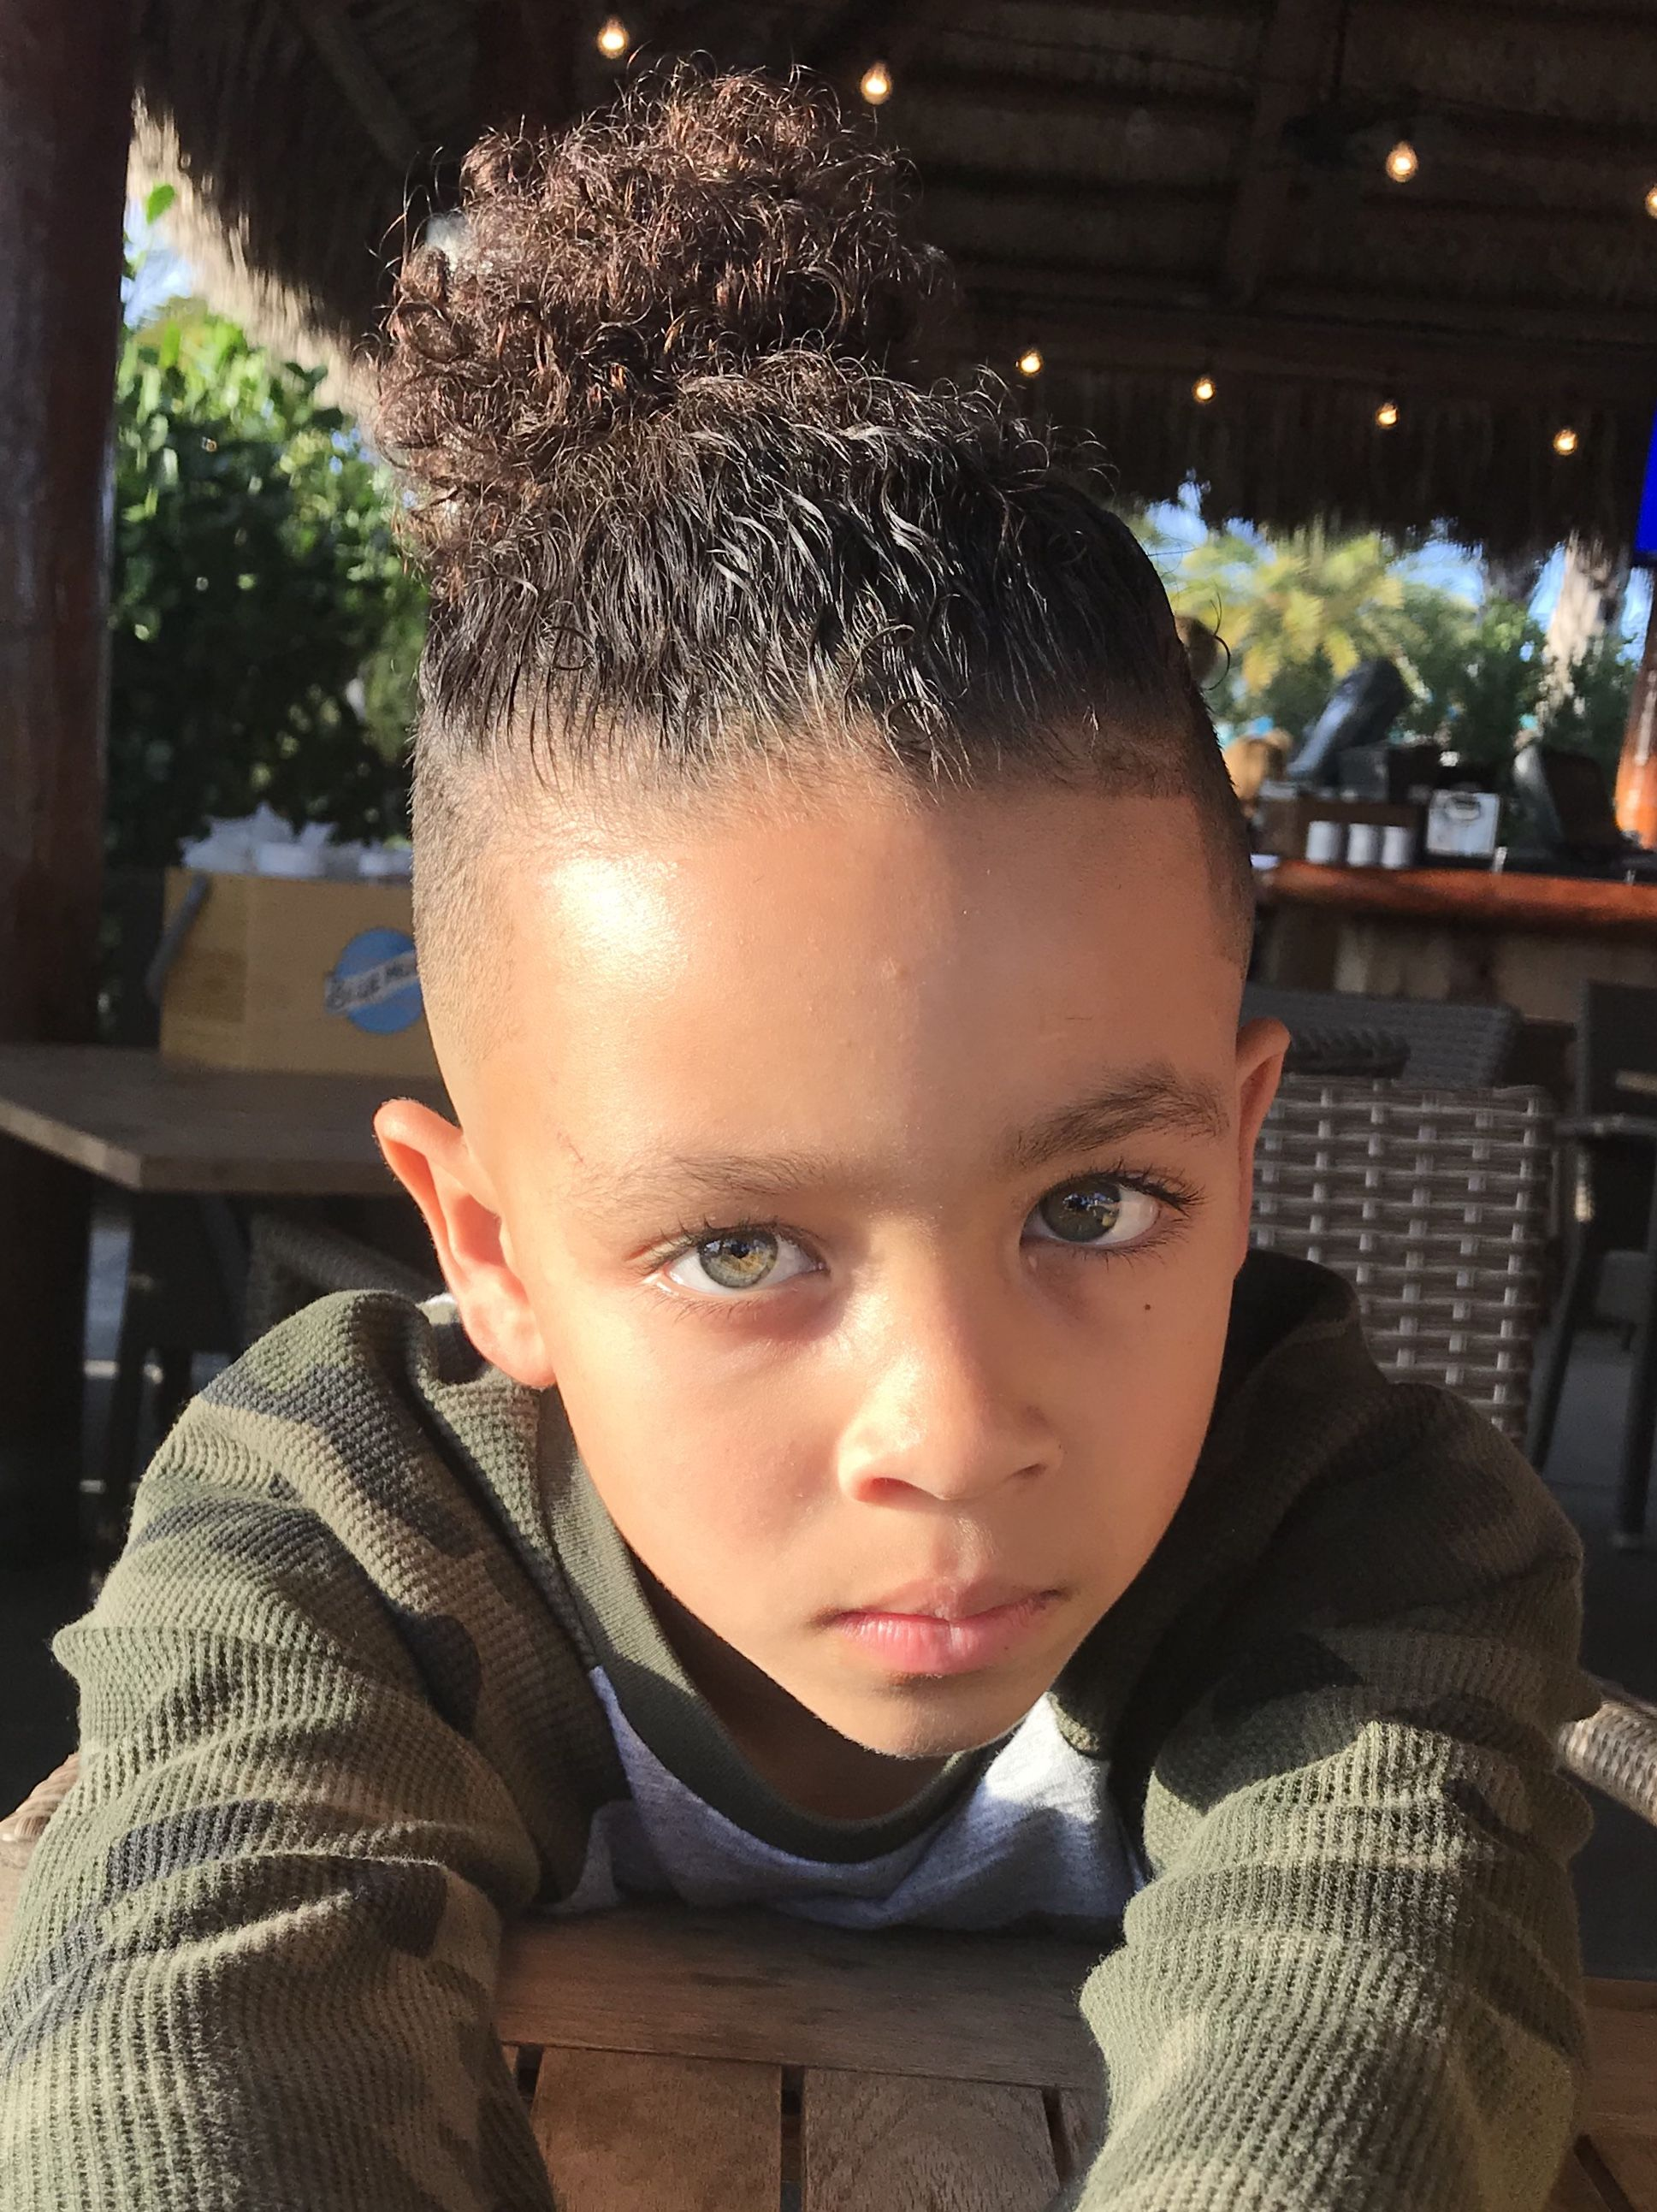 Green Eyed Boy Mulotto Kids Blazegormley On Instagram Natural Hair Styles Hair Styles Twin Girls